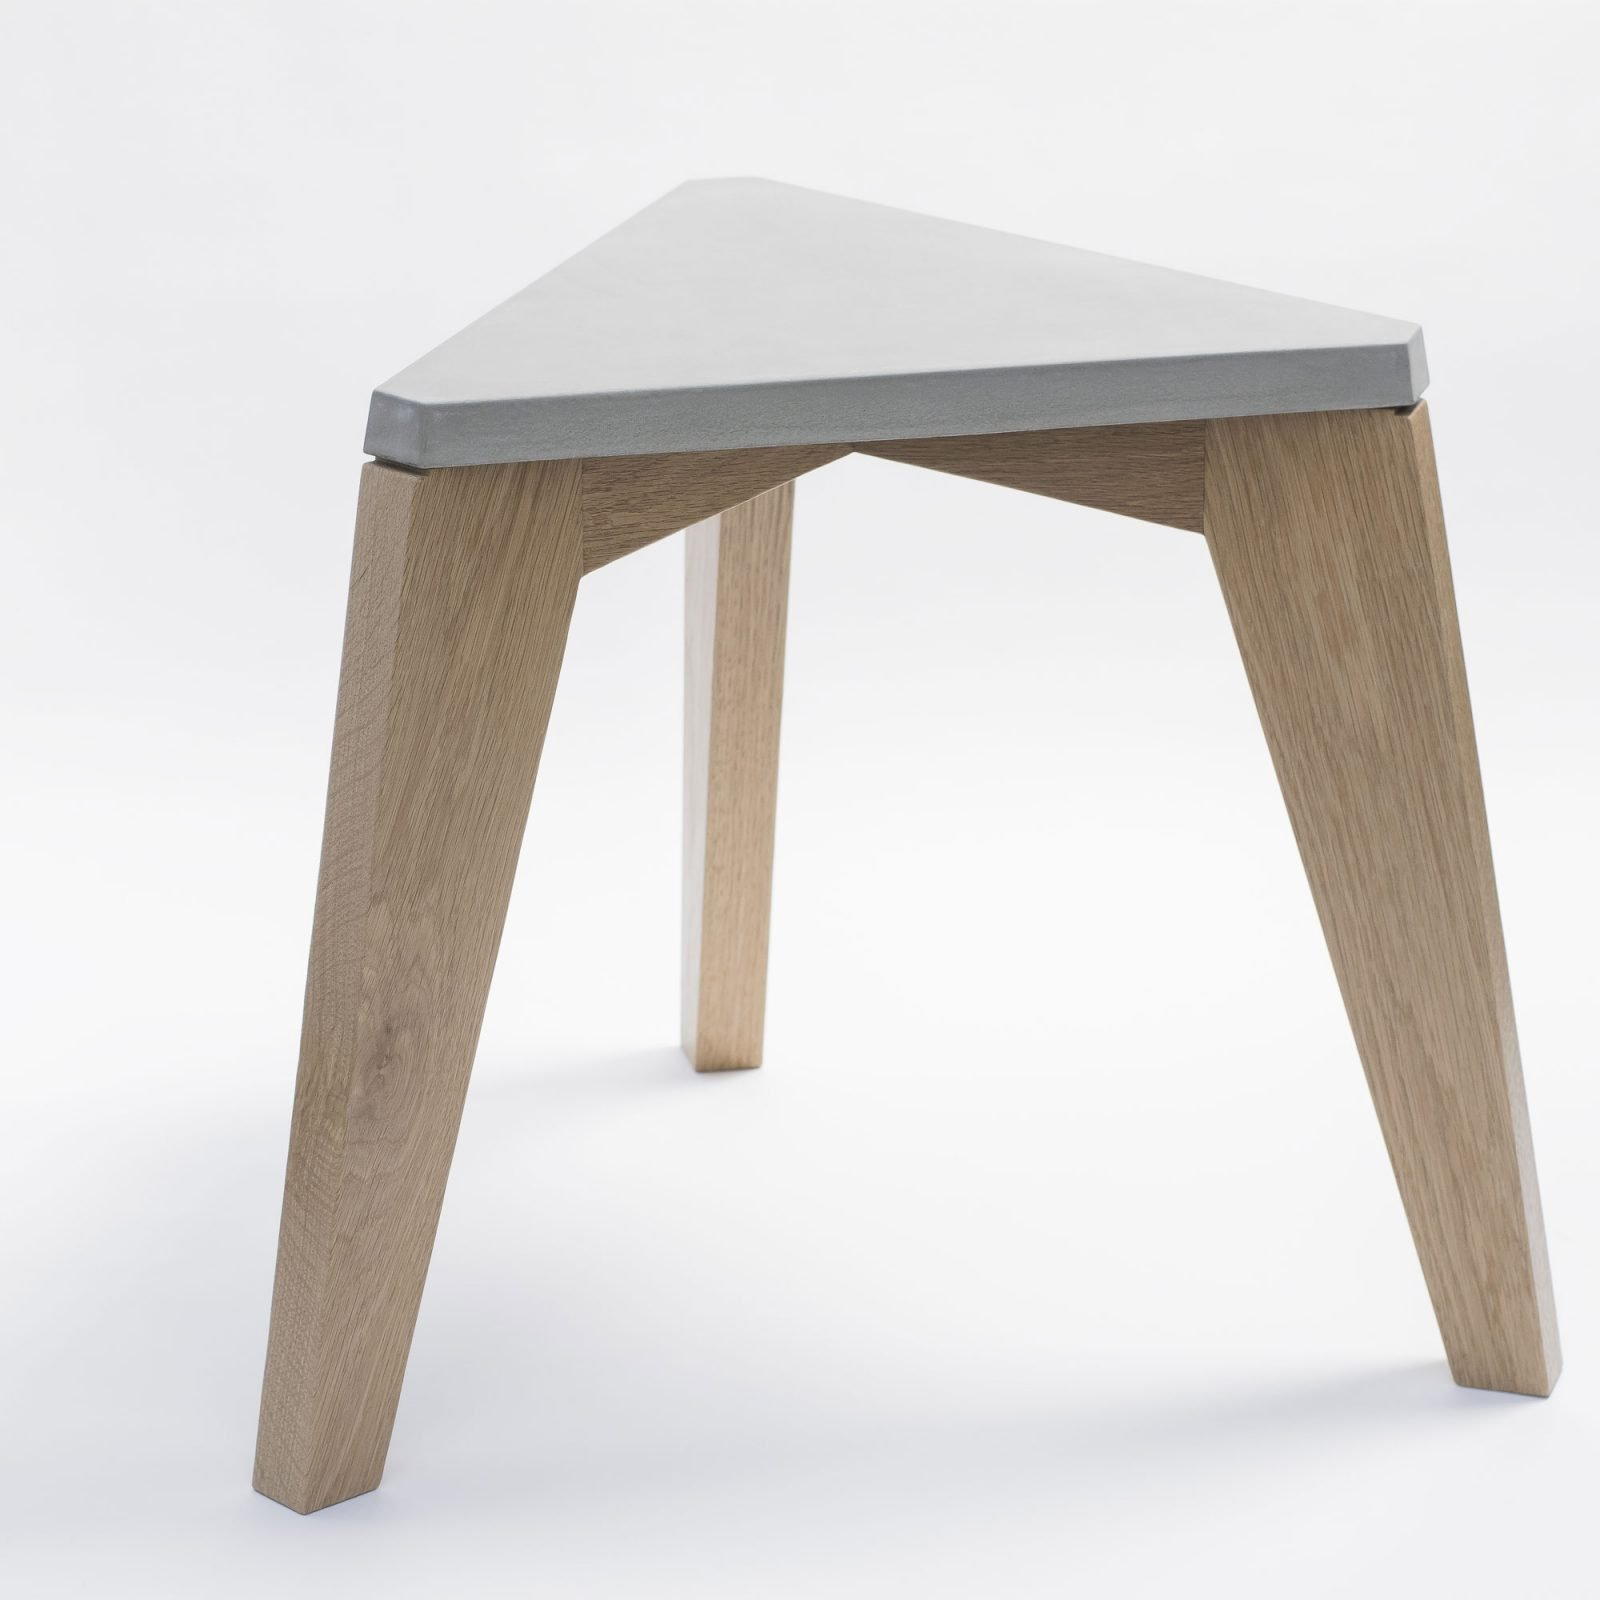 maple-wood-and-concrete-stool-3